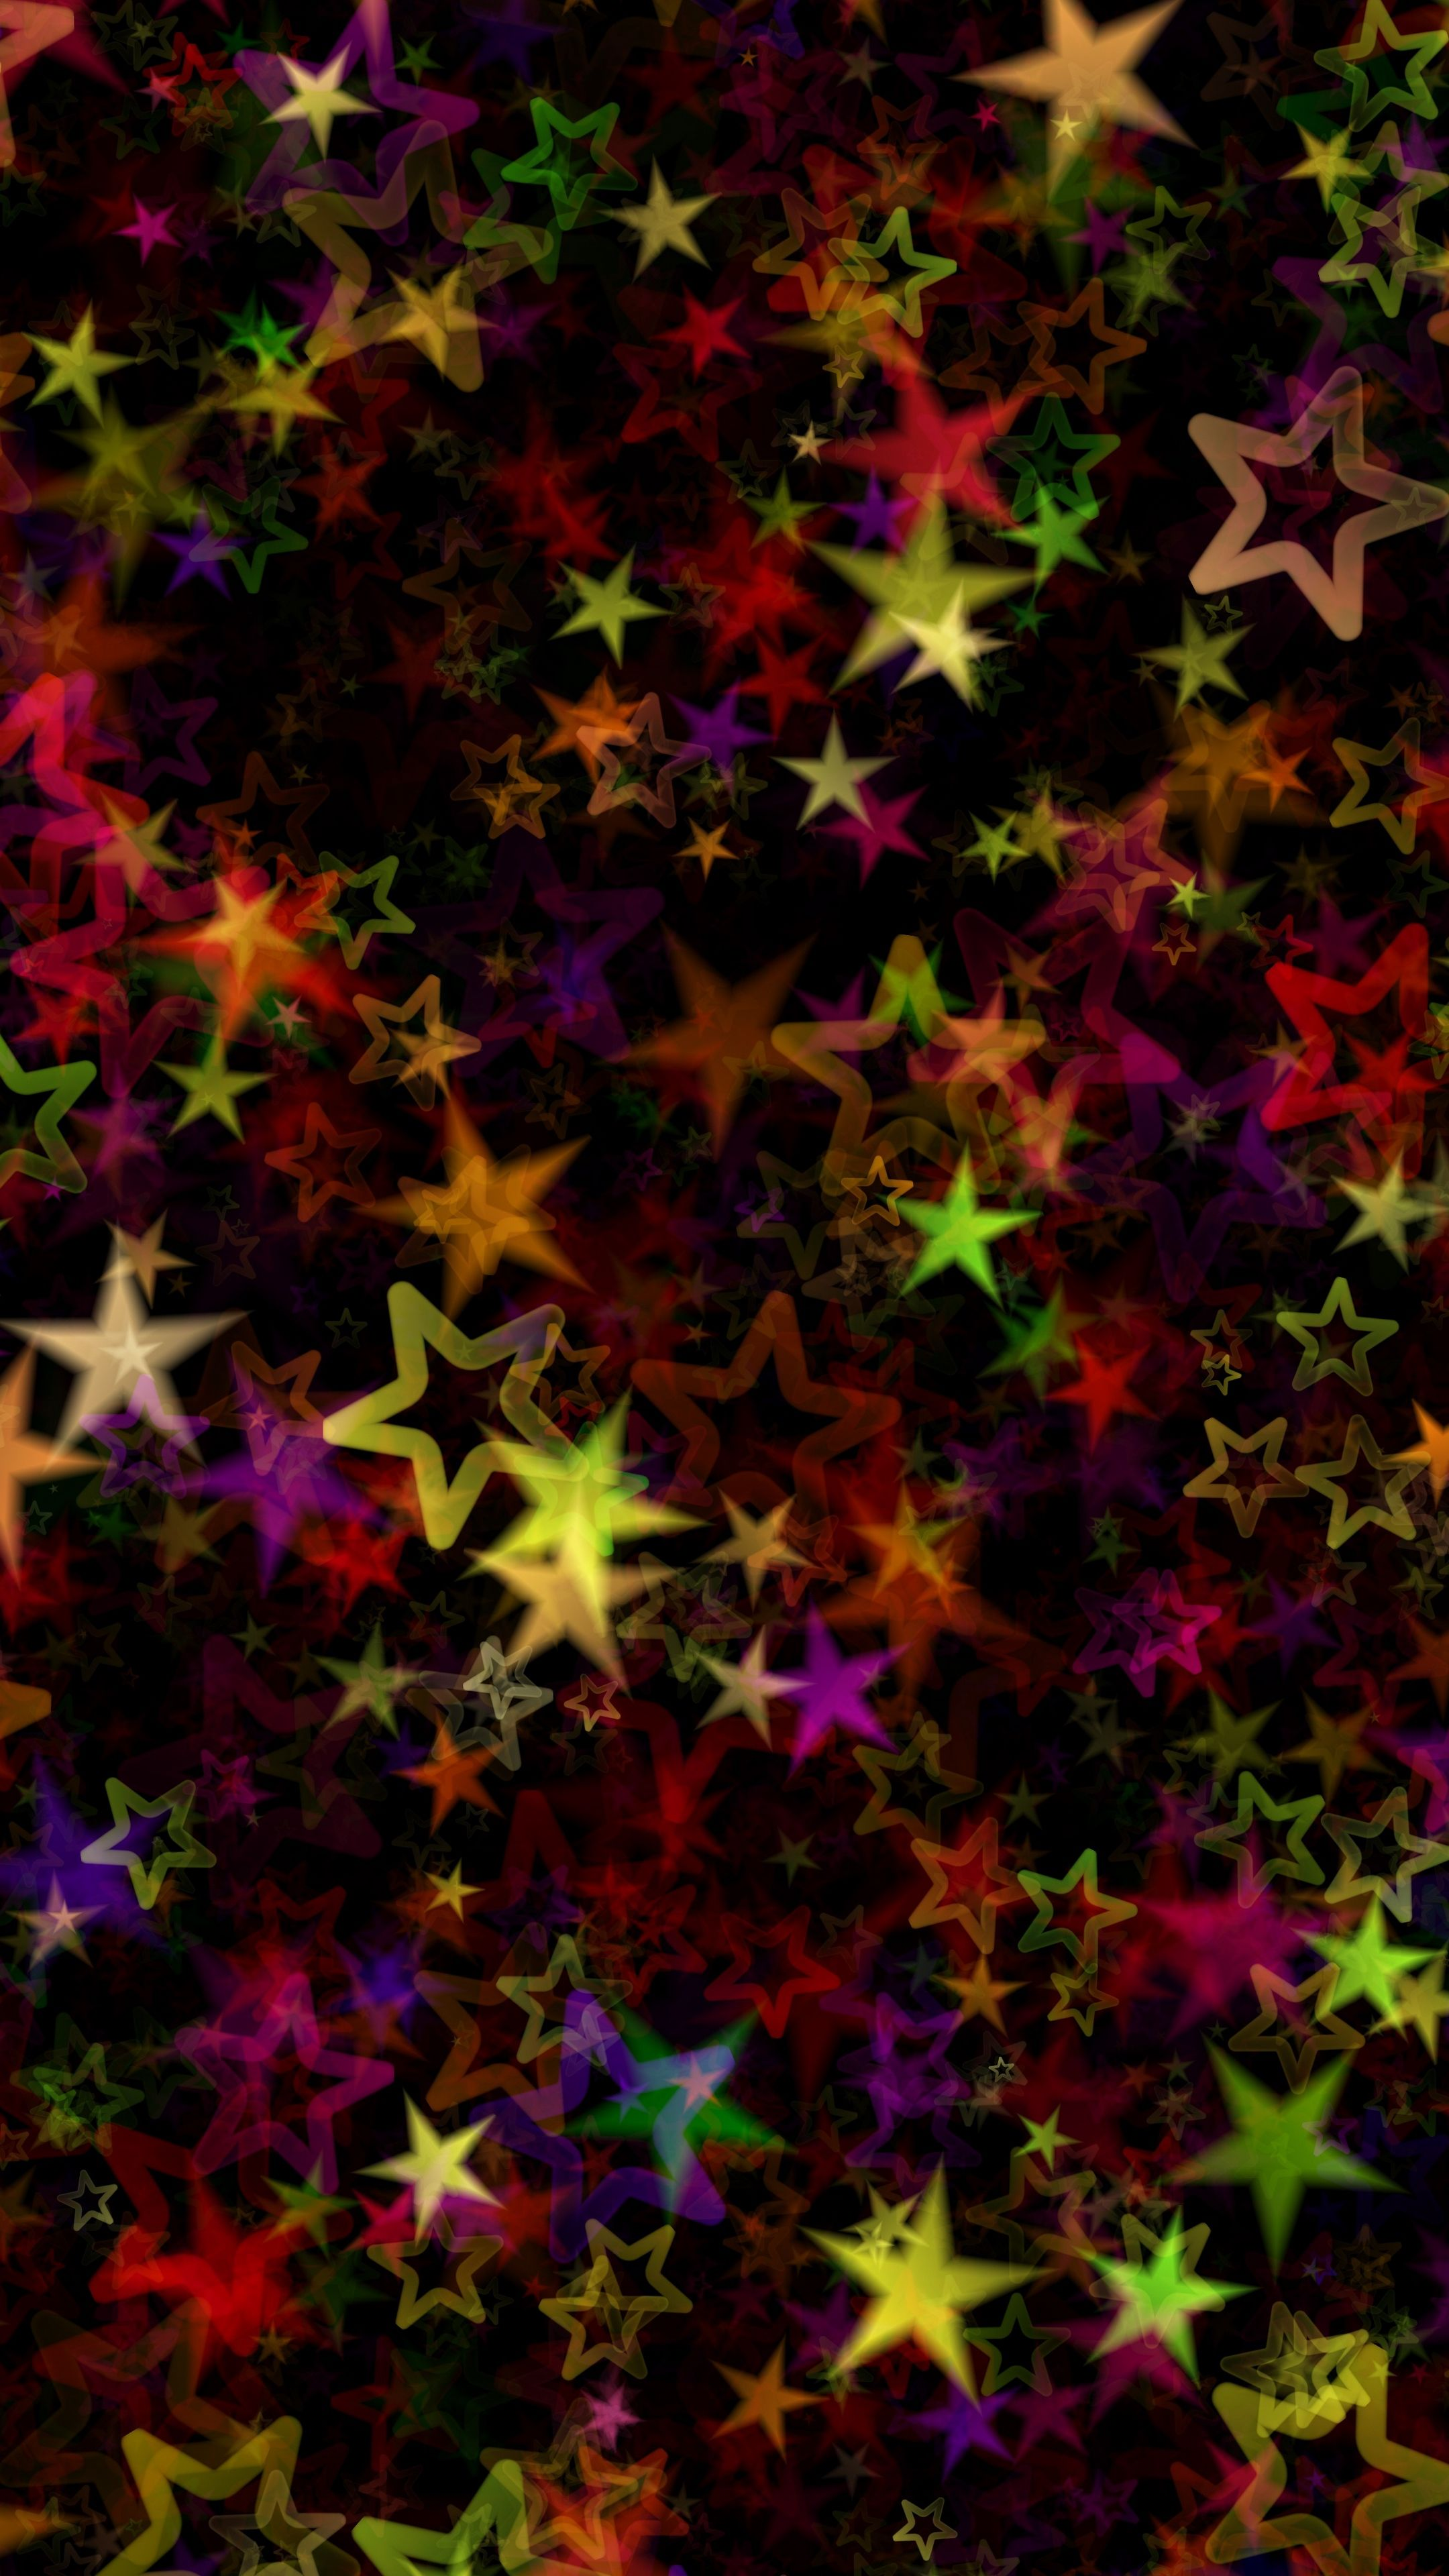 Abstract Stars Colorful Art Android Wallpapers 4k Hd Colorful Wallpaper Cute Patterns Wallpaper Abstract Wallpaper